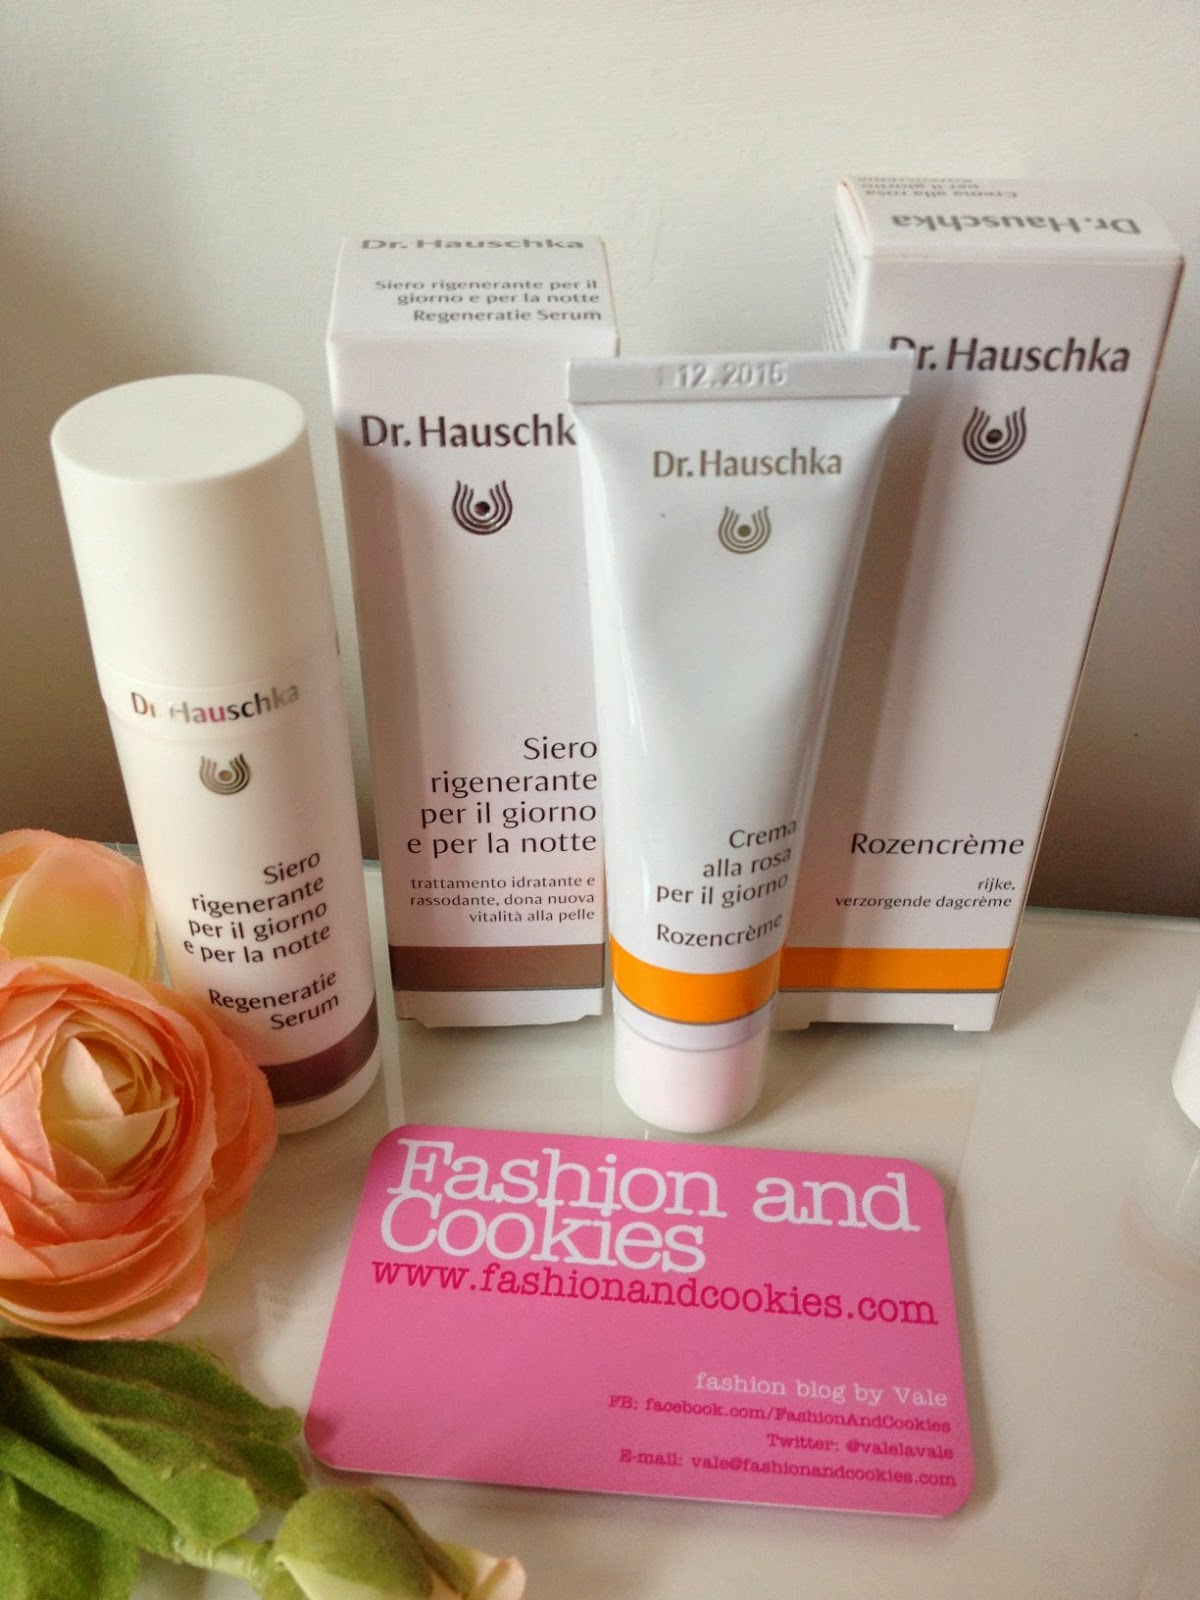 Dr Hauschka regenerating serum review, Dr Hauschka rose day cream, haul, Fashion and Cookies, fashion blogger